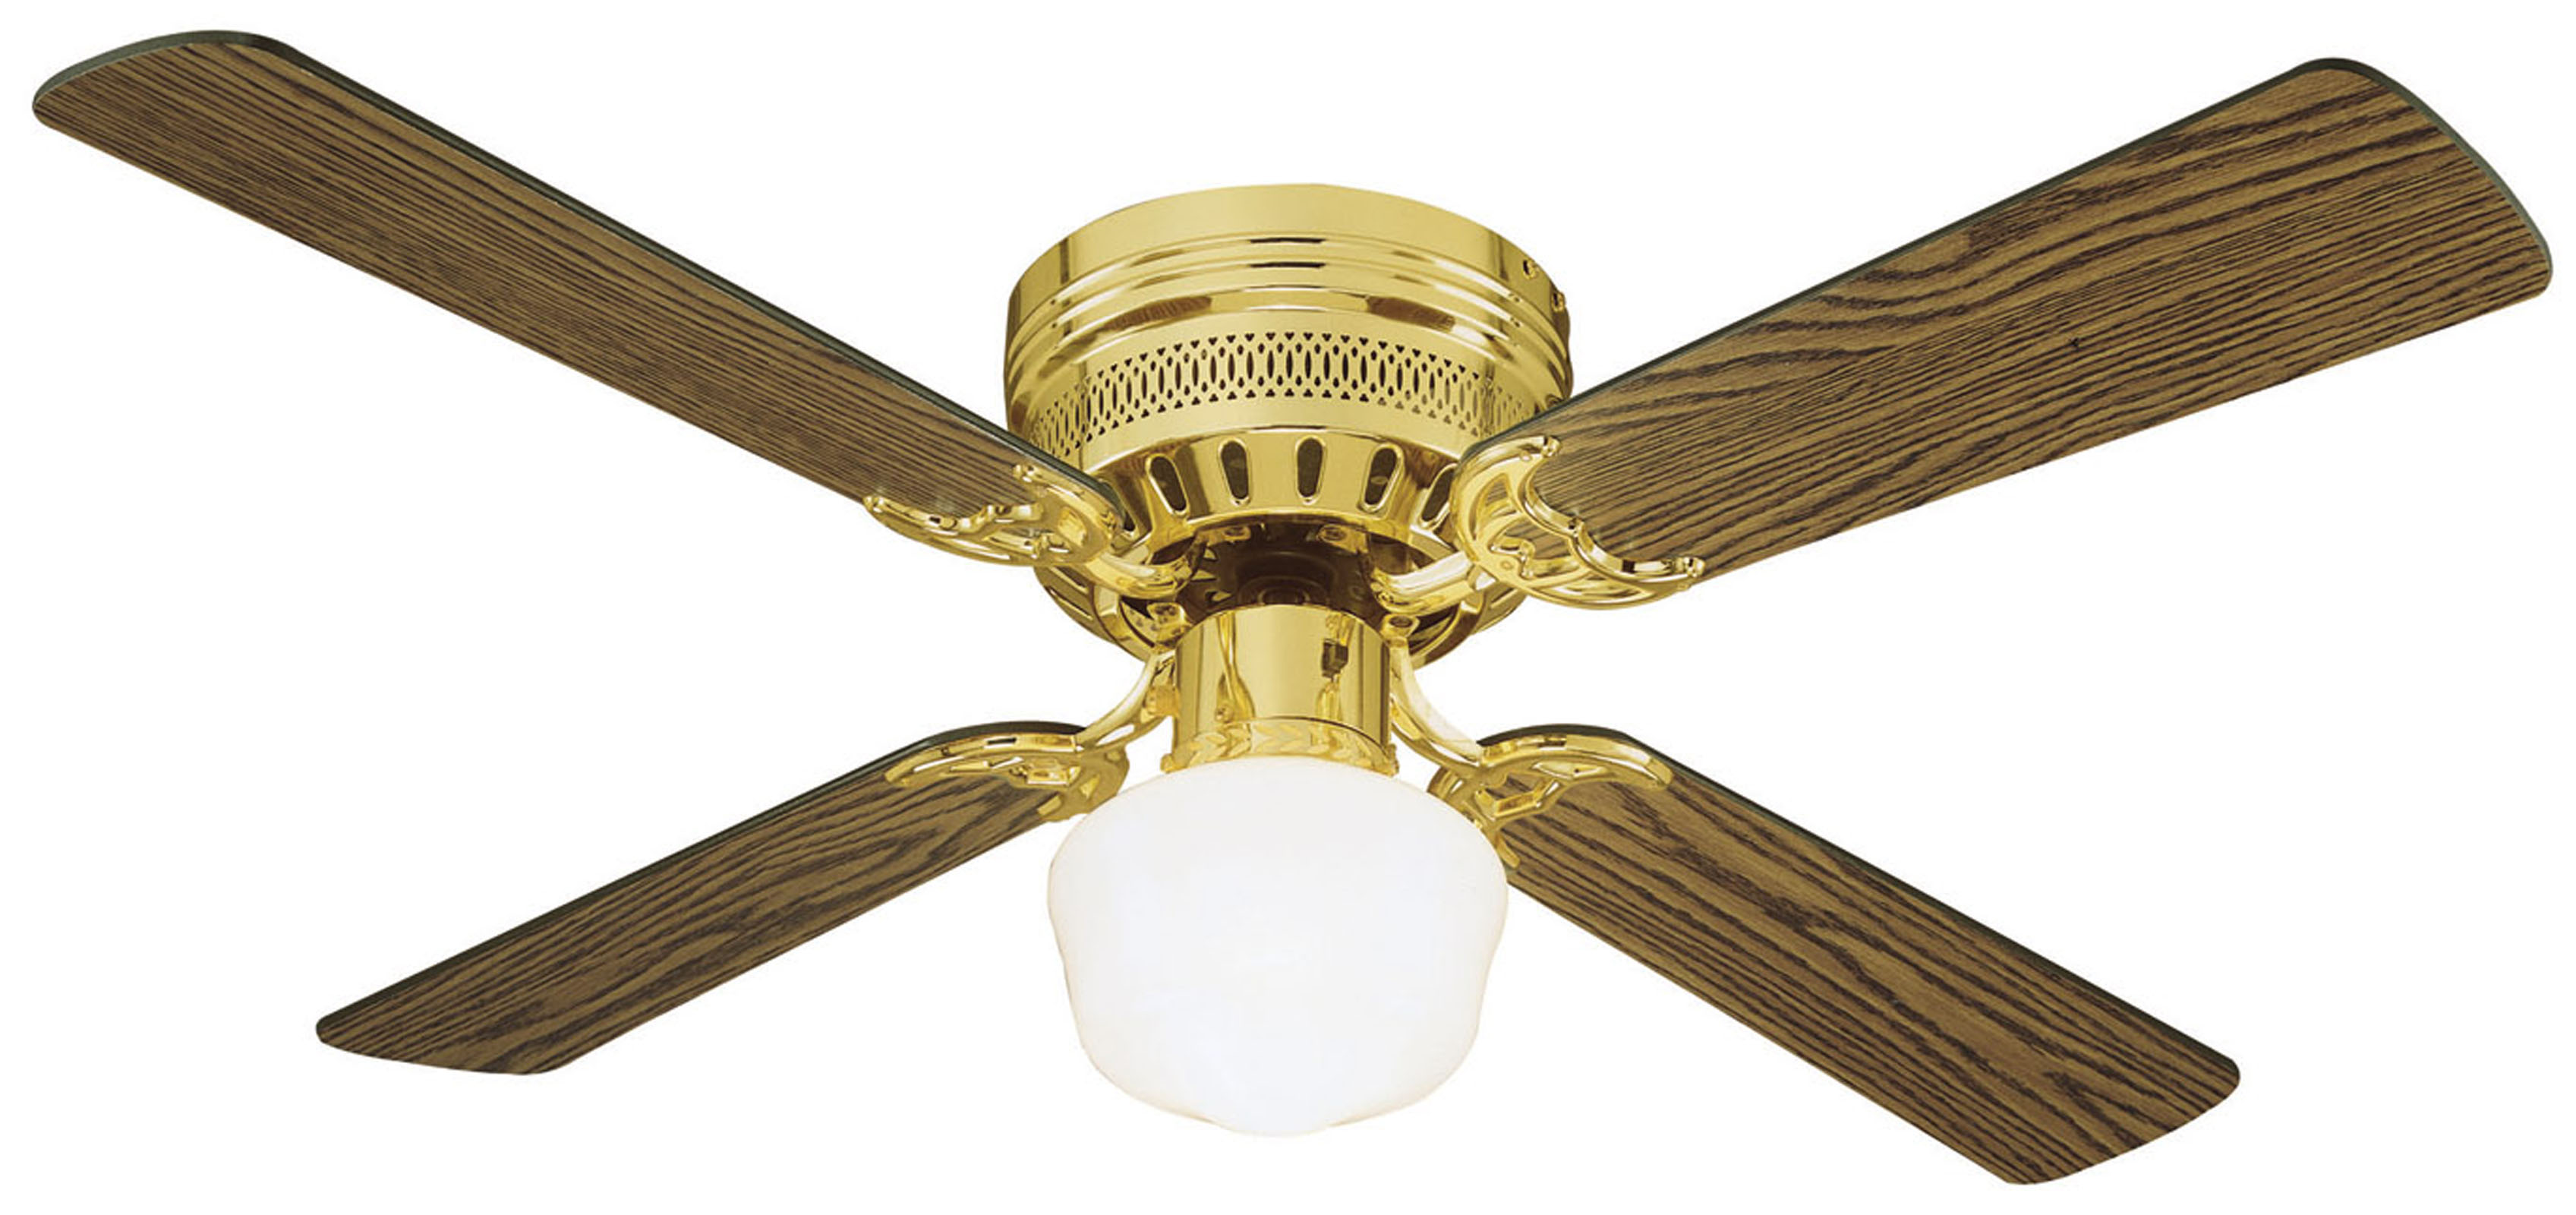 Ceiling Fan Climate Control